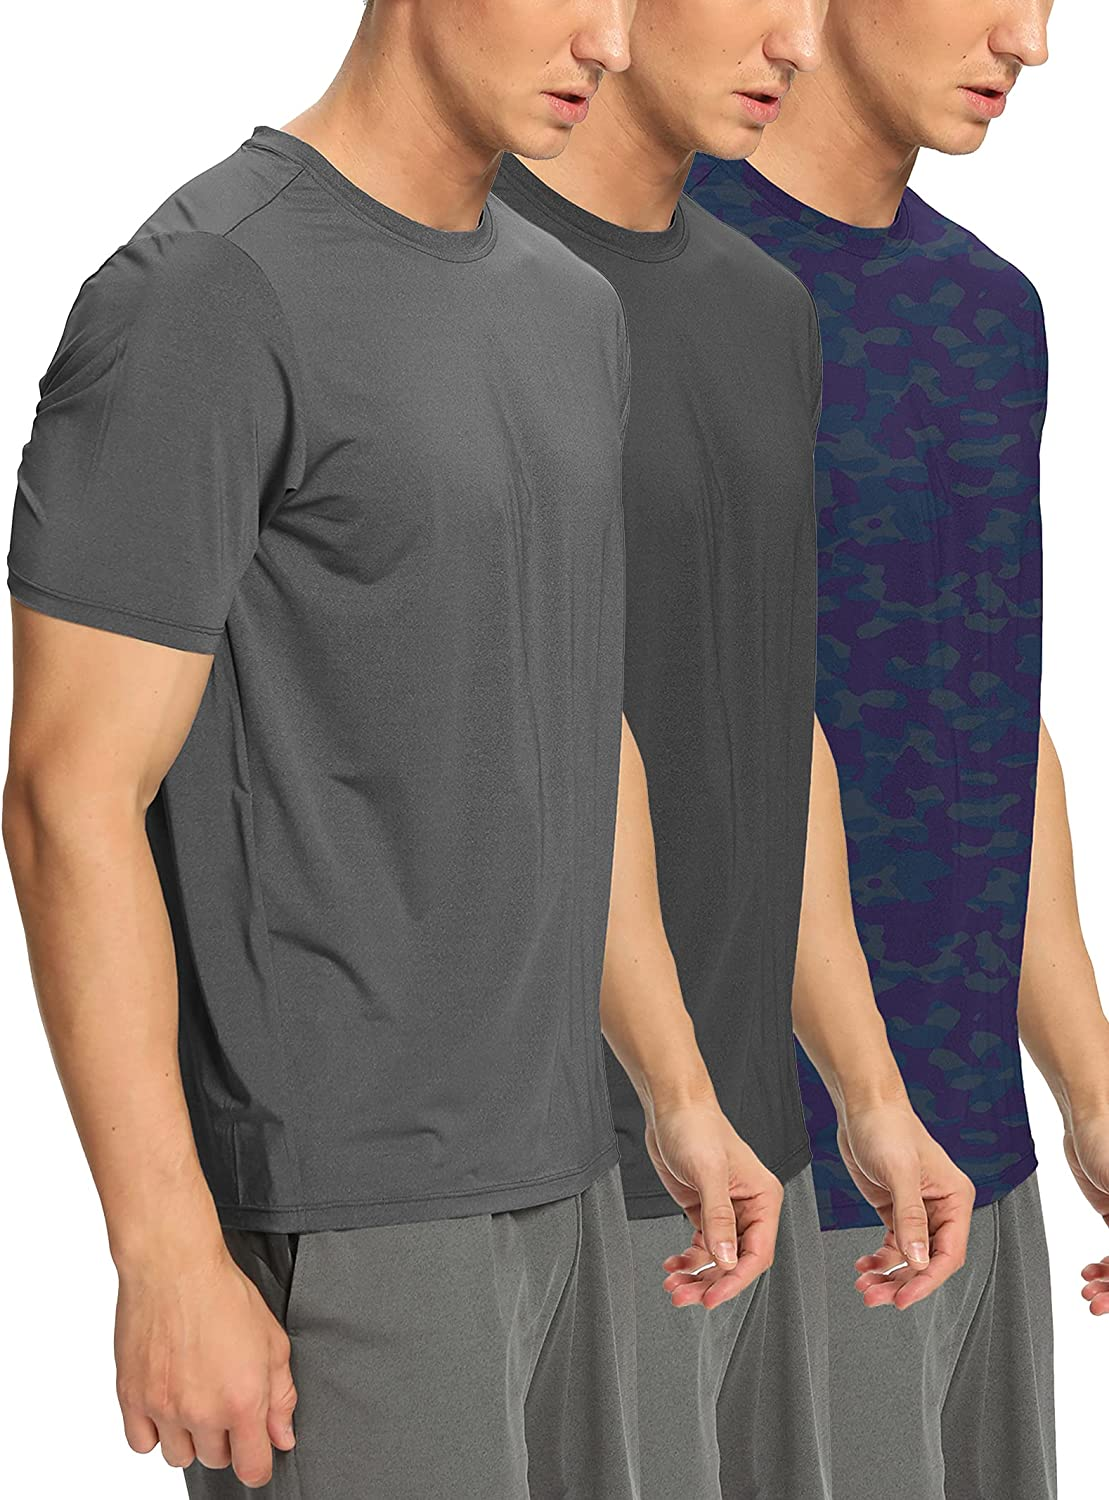 Bombing new work Men's 3 Pack T-Shirt Training Dry Sport Outlet ☆ Free Shipping Tee Workou Fit Neck Crew